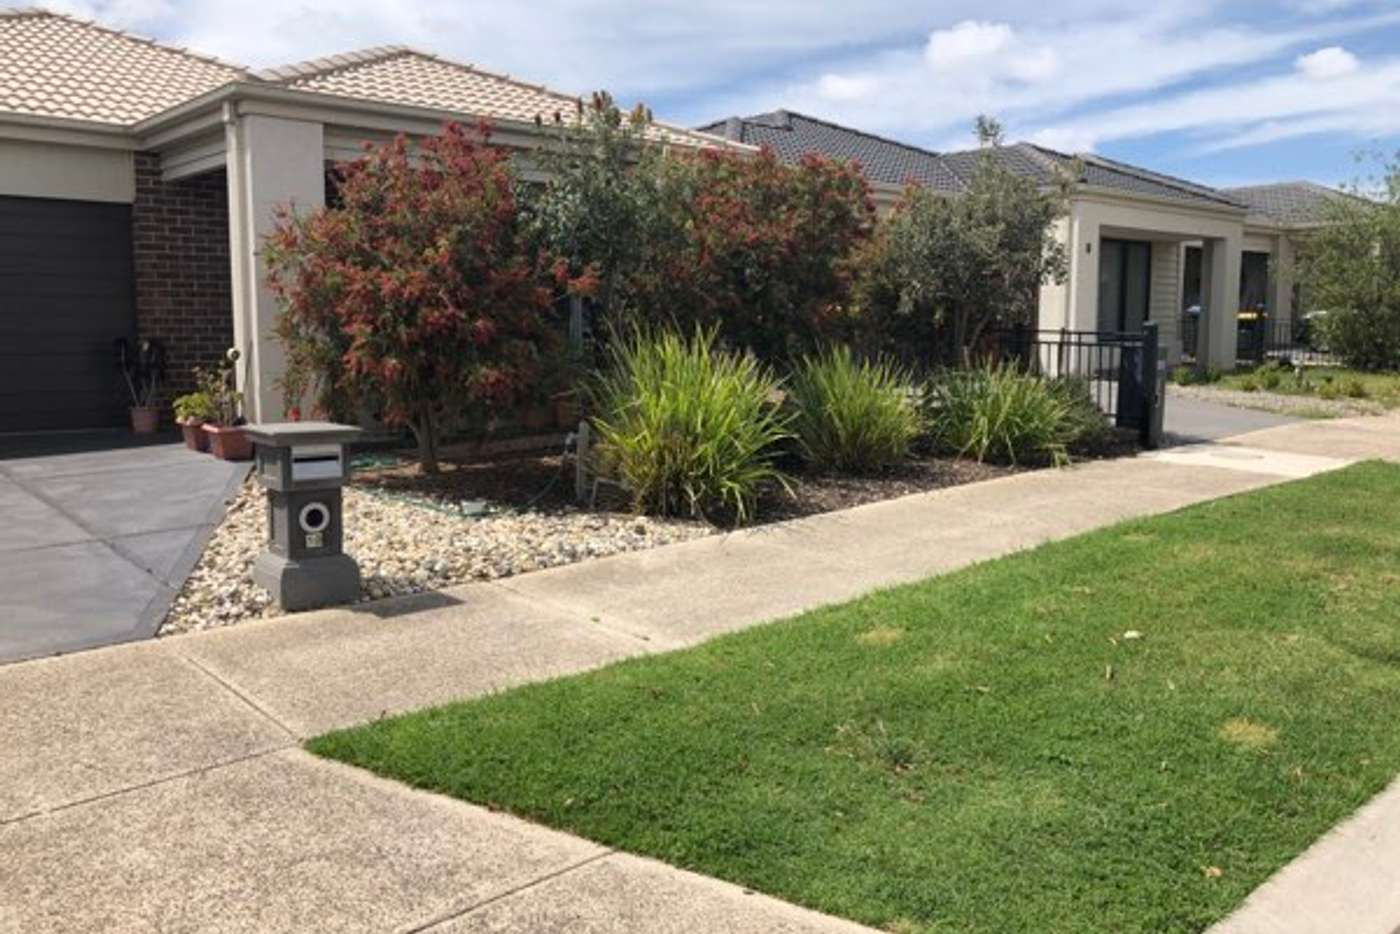 Main view of Homely house listing, 10 Brookwood Street, Tarneit VIC 3029